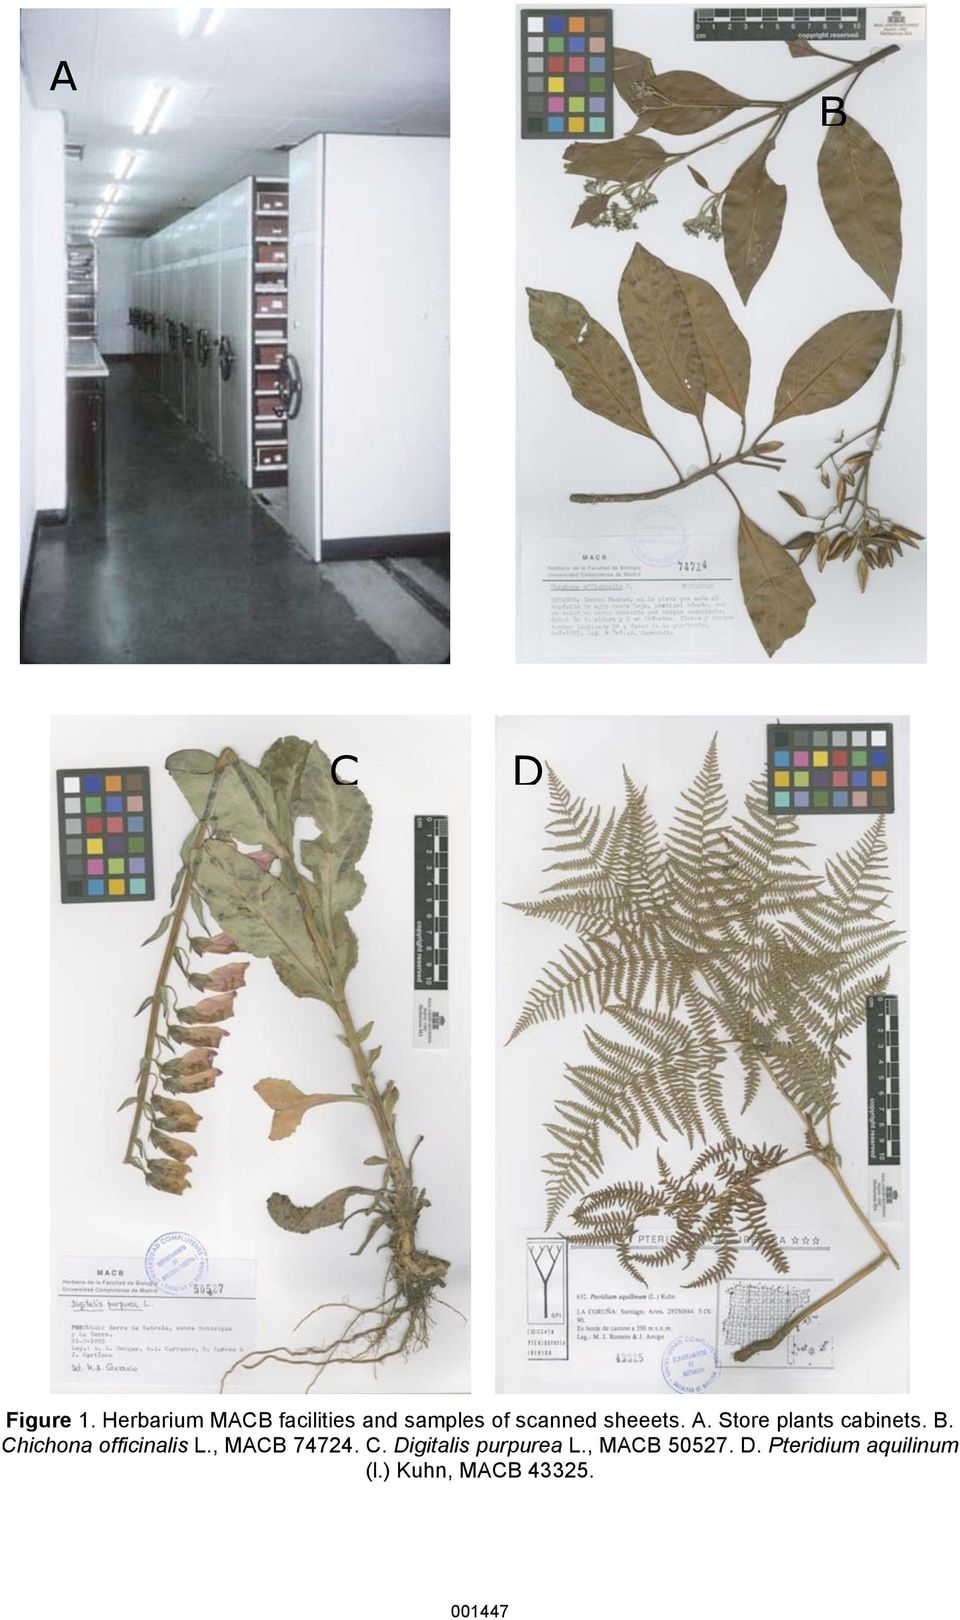 A. Store plants cabinets. B. Chichona officinalis L.